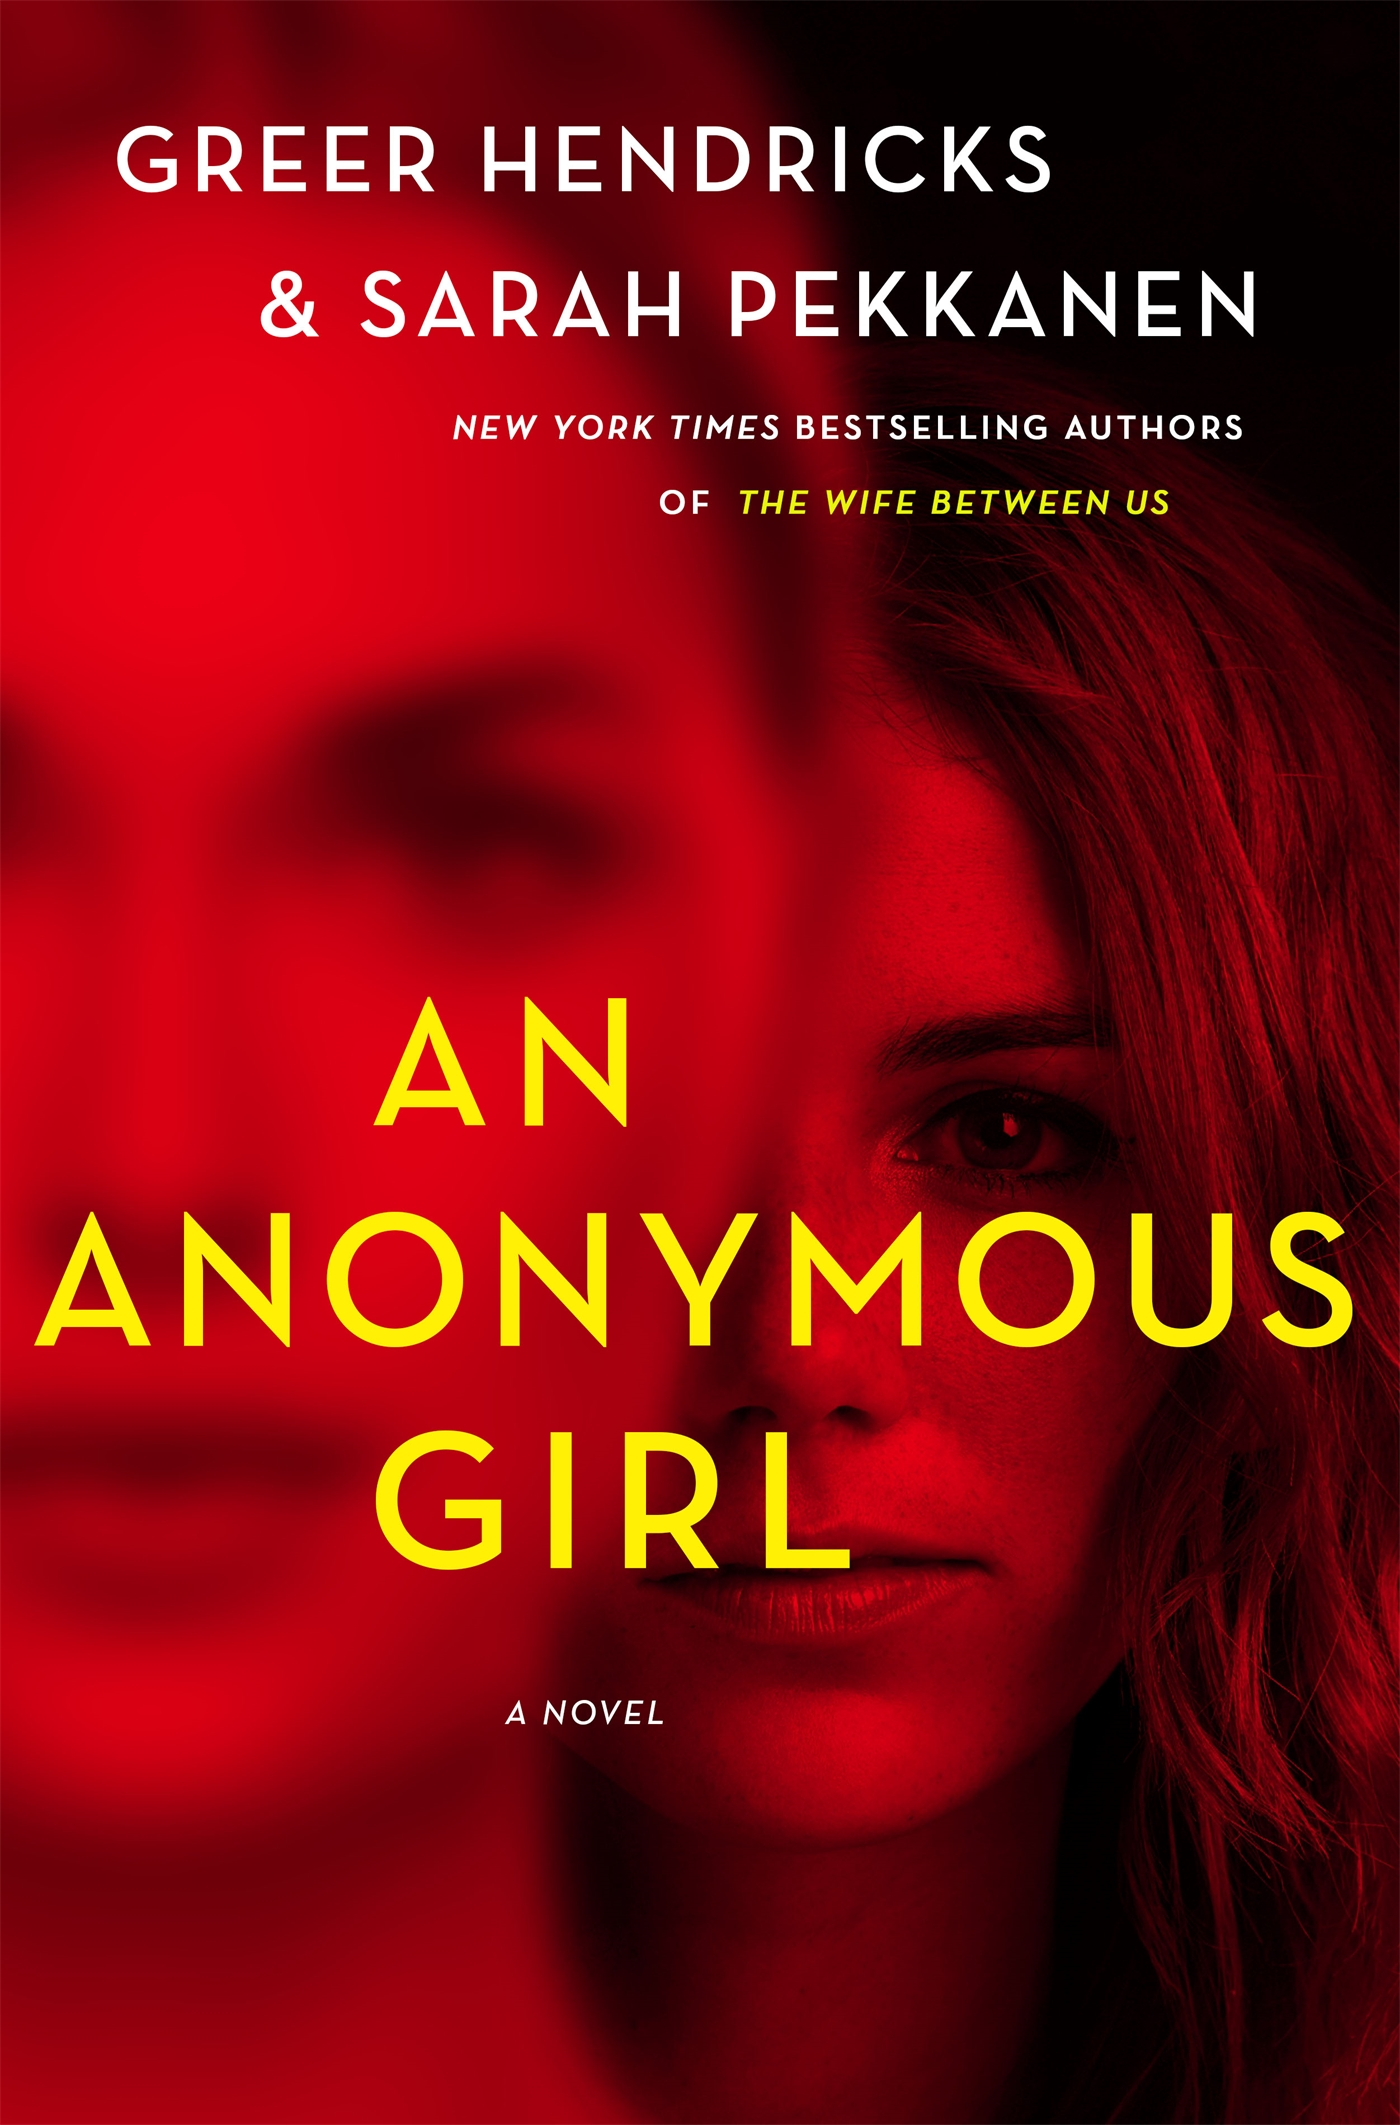 """An Anonymous Girl"" by  Greer Hendricks and Sarah Pekkanen (Image: Courtesy St. Martin's Press)"